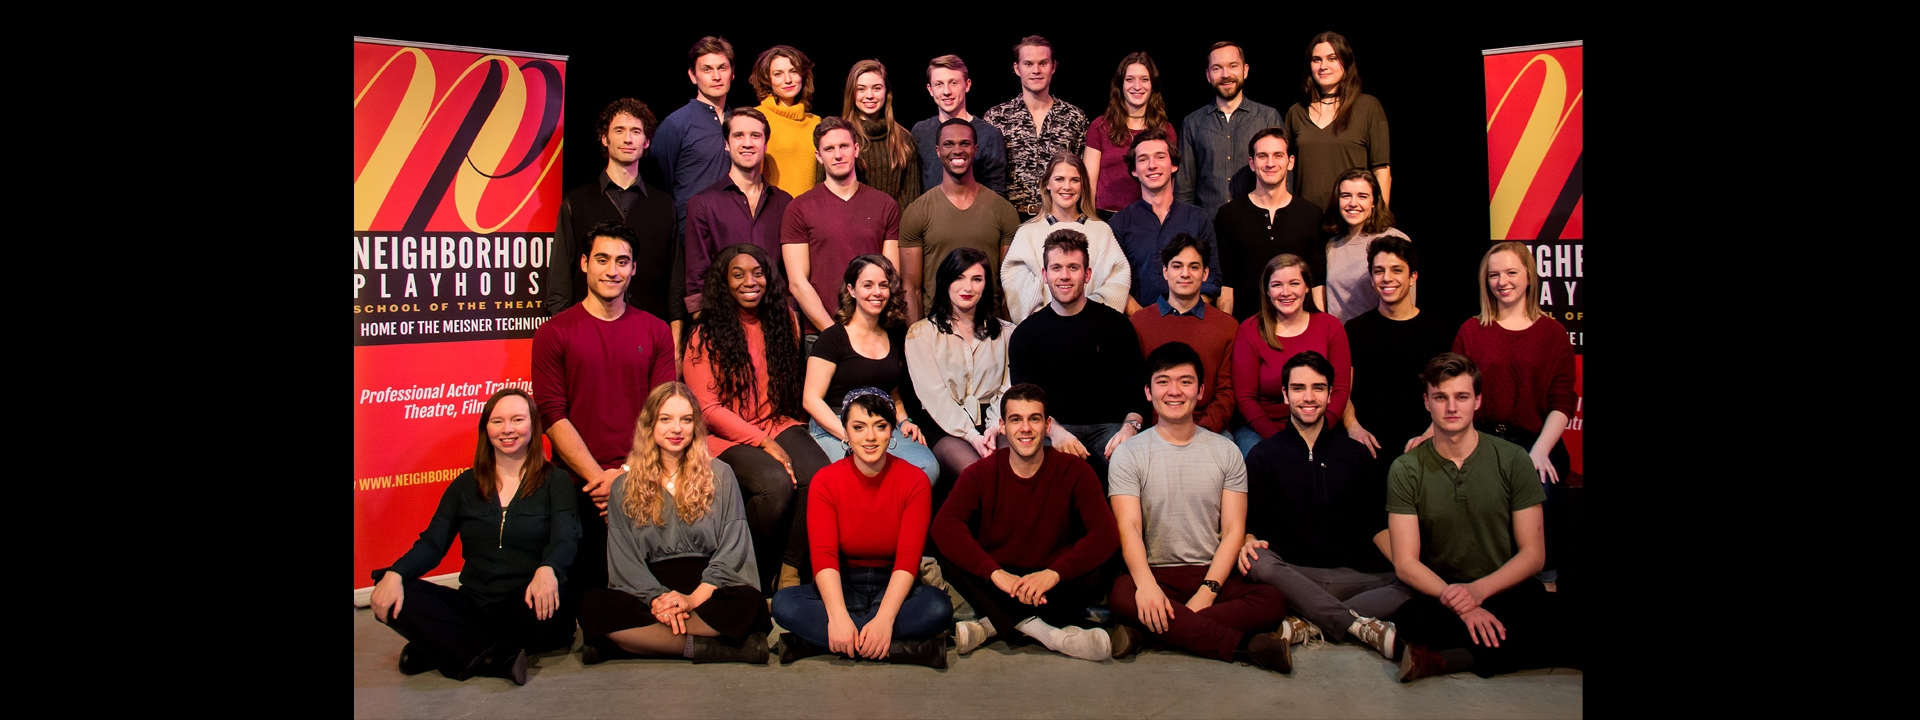 Slide: The Class of 2018 joins a 90 year legacy of excellence in actor training.